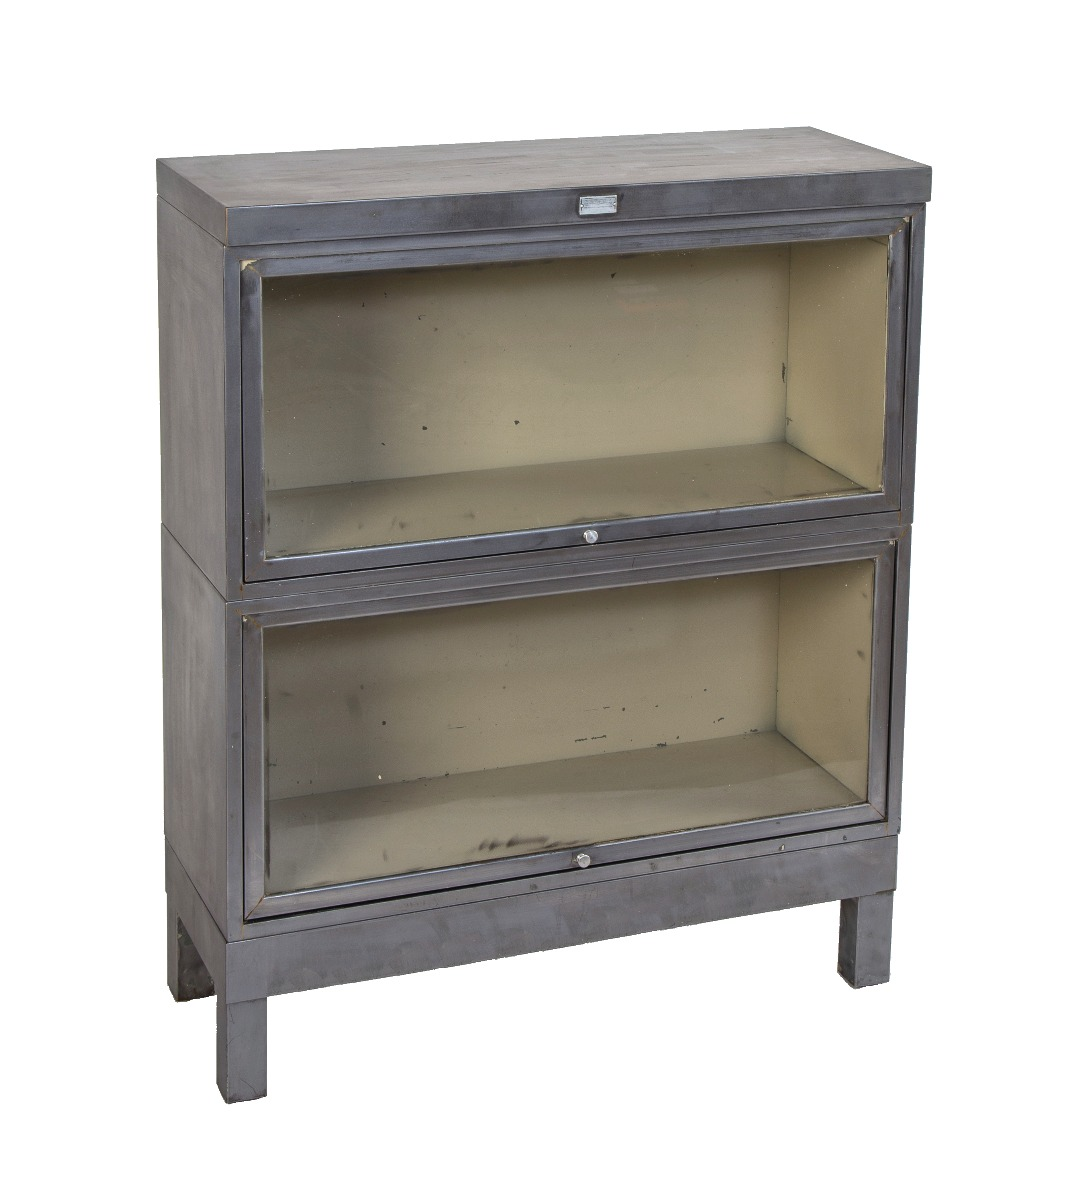 Hard To Find Vintage American Industrial Salvaged Chicago Office Building Freestanding Brushed Metal Barrister Bookcase